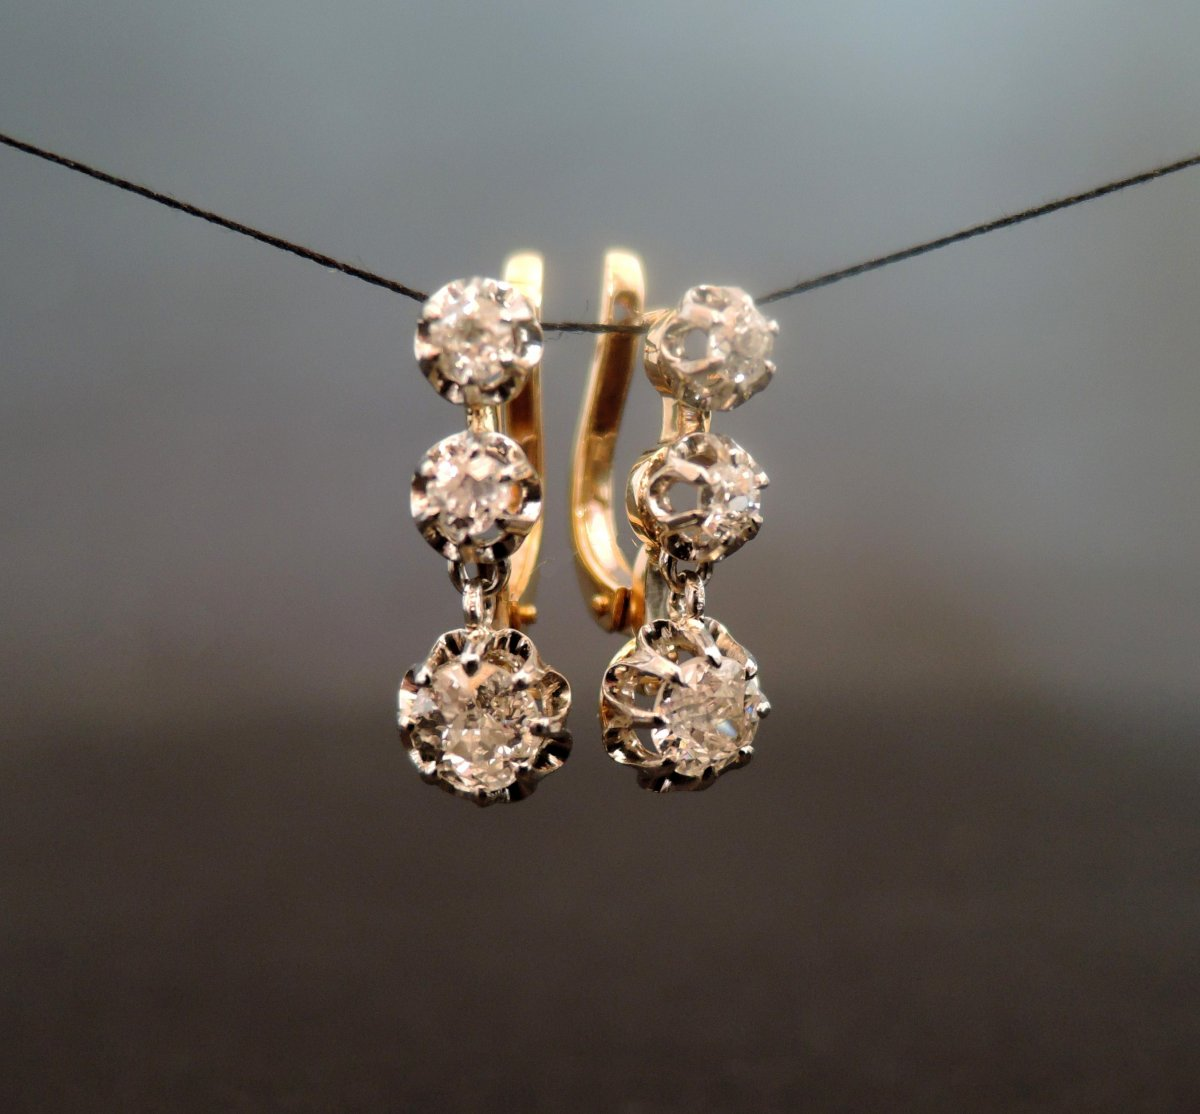 1.08 Ct Diamonds, 18k Gold And Platinum Old Earrings